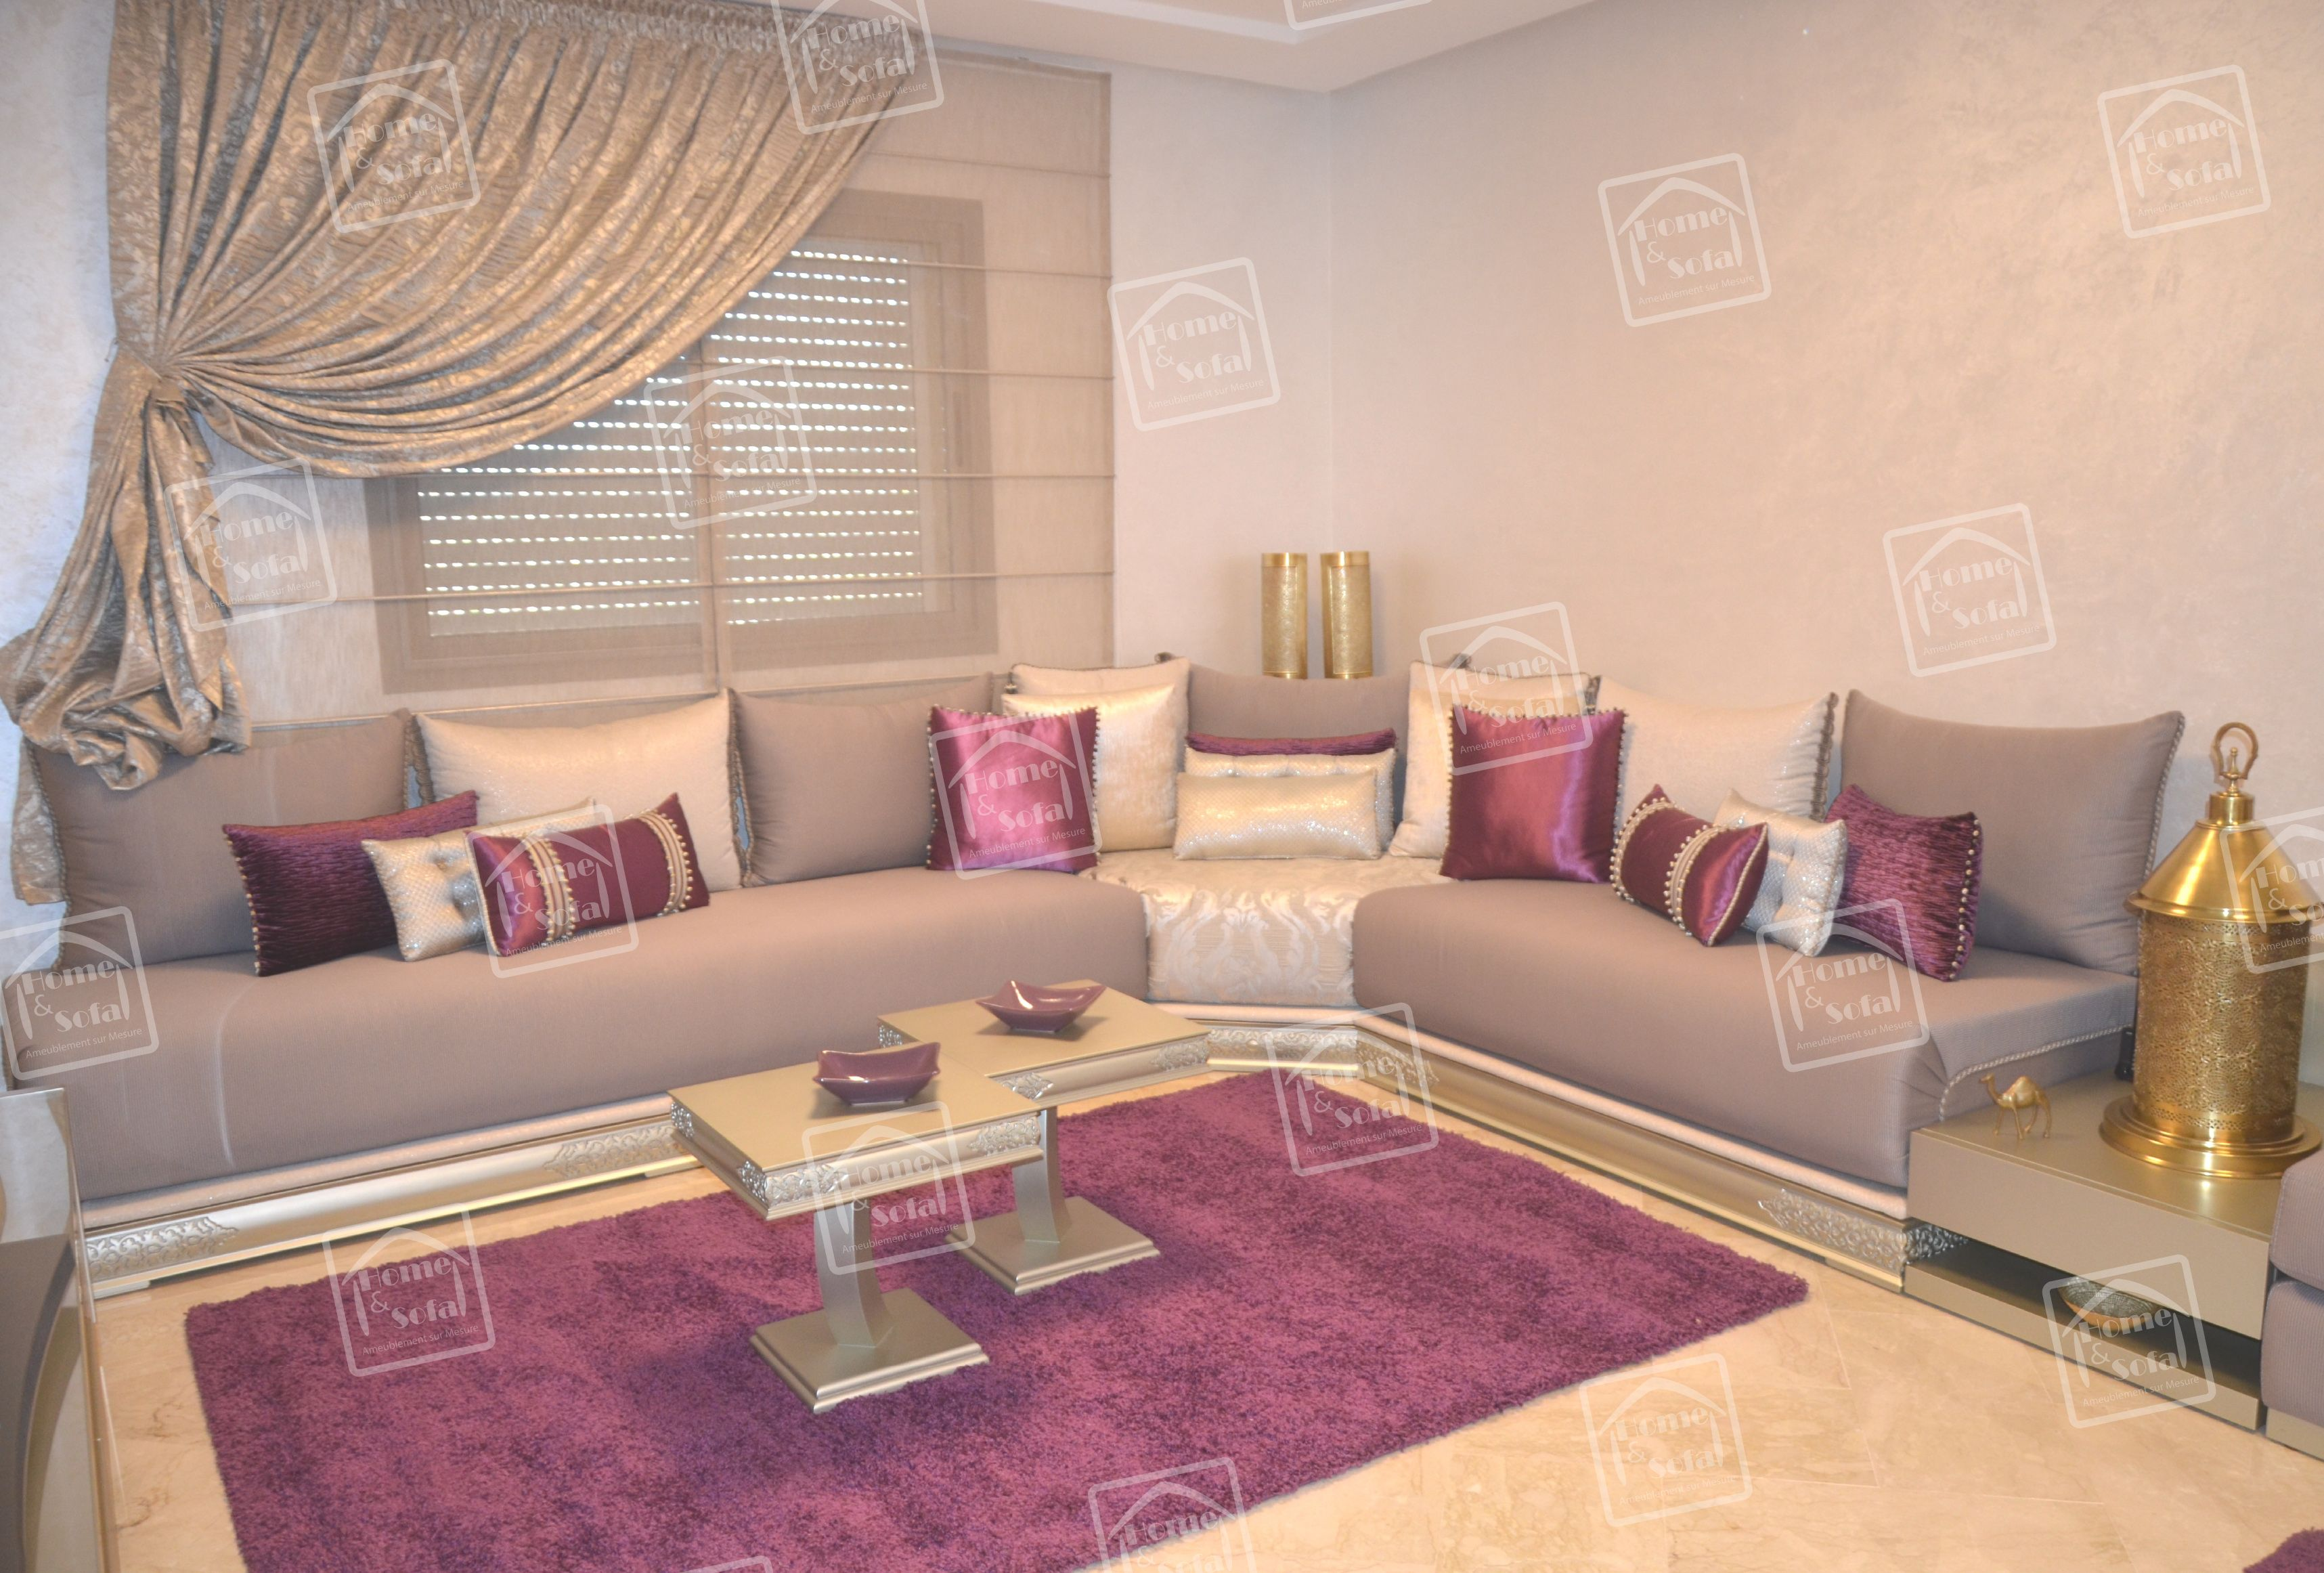 Home and Sofa - texture, agencements de couleurs et ...